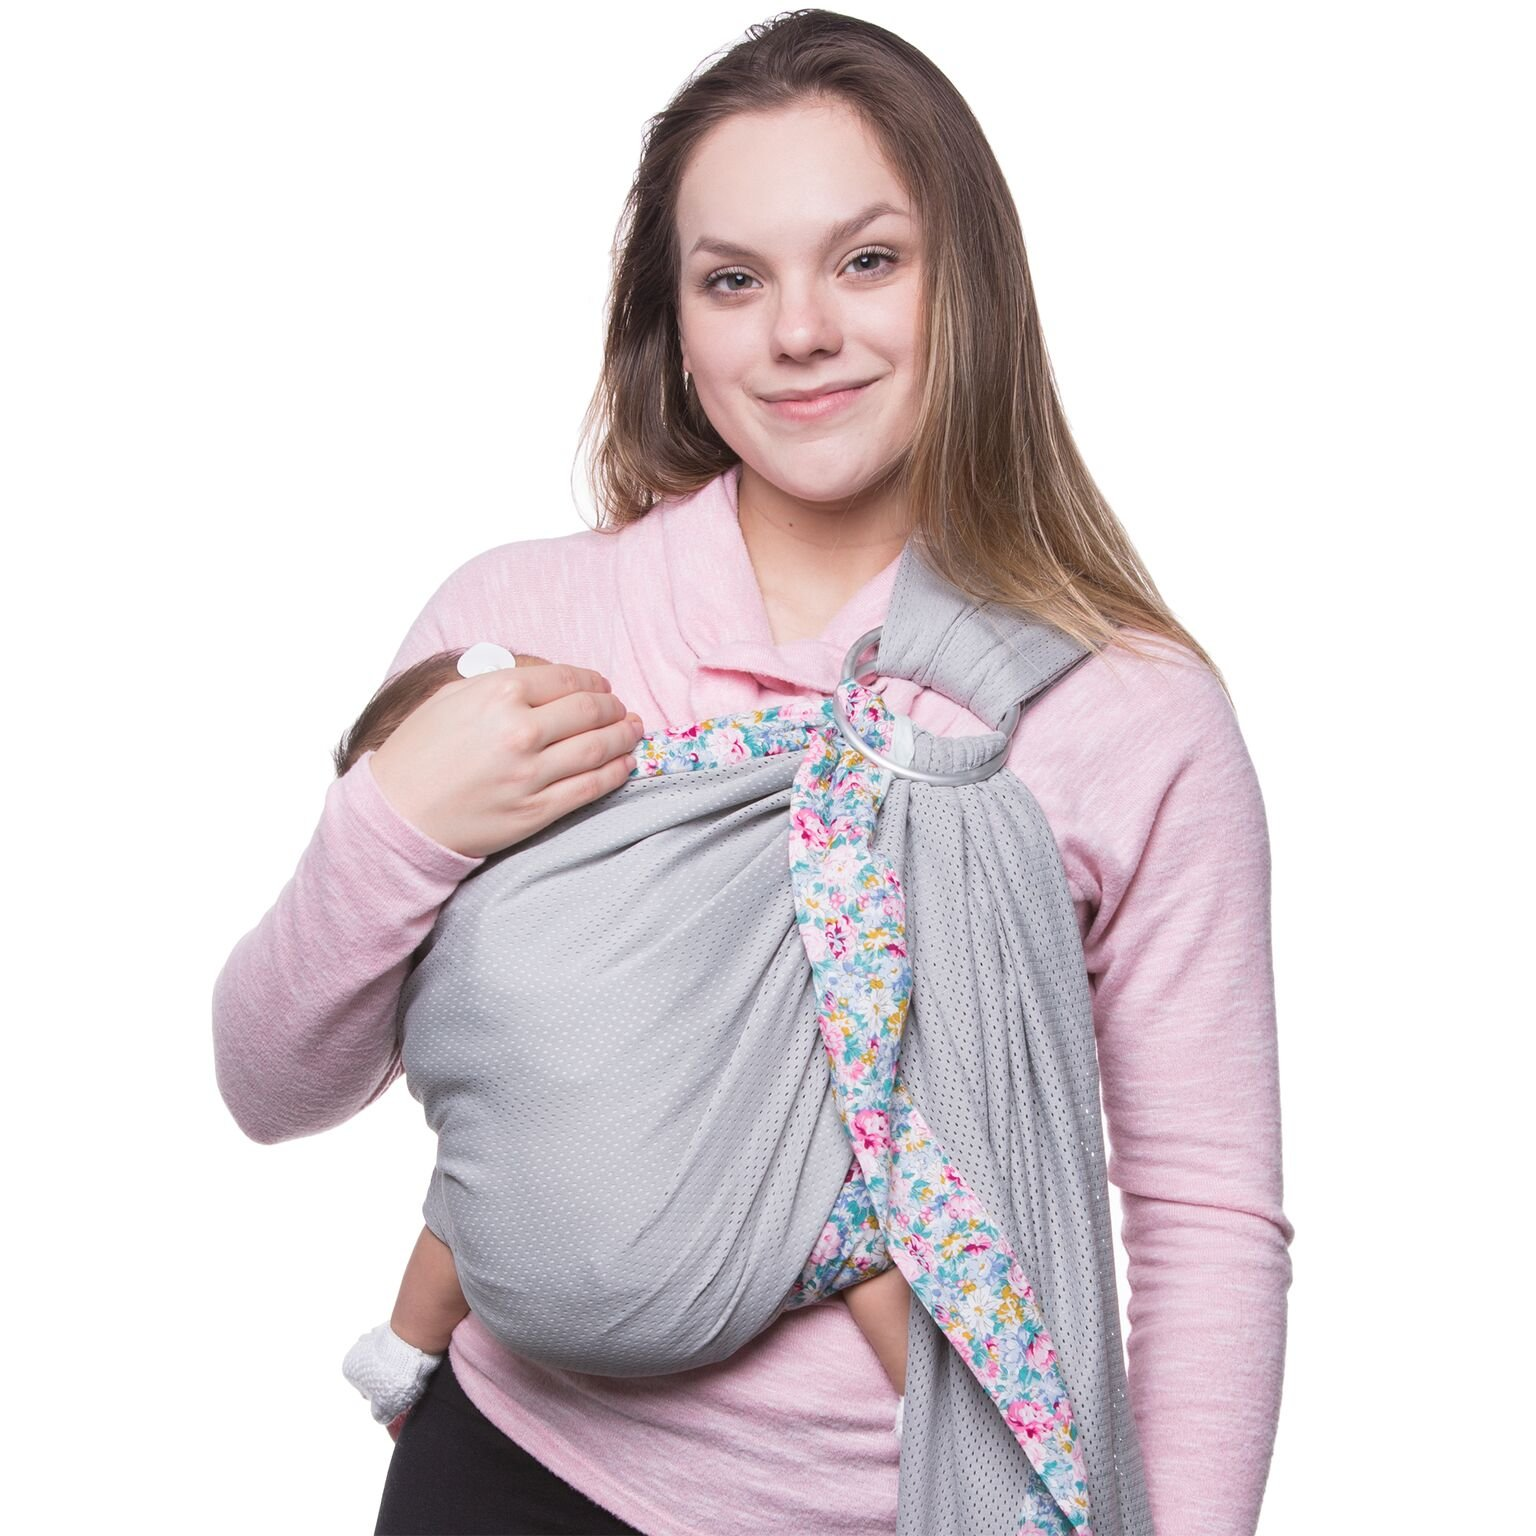 Baby Wrap Carrier Cotton Water Baby Sling Carrier for 0-18 Month Infants & Toddlers, Breathable, Comfy Breastfeeding Nursing Cover  Cute Floral Newborn Carrier  Top Baby Shower Gift Pink Sandesica